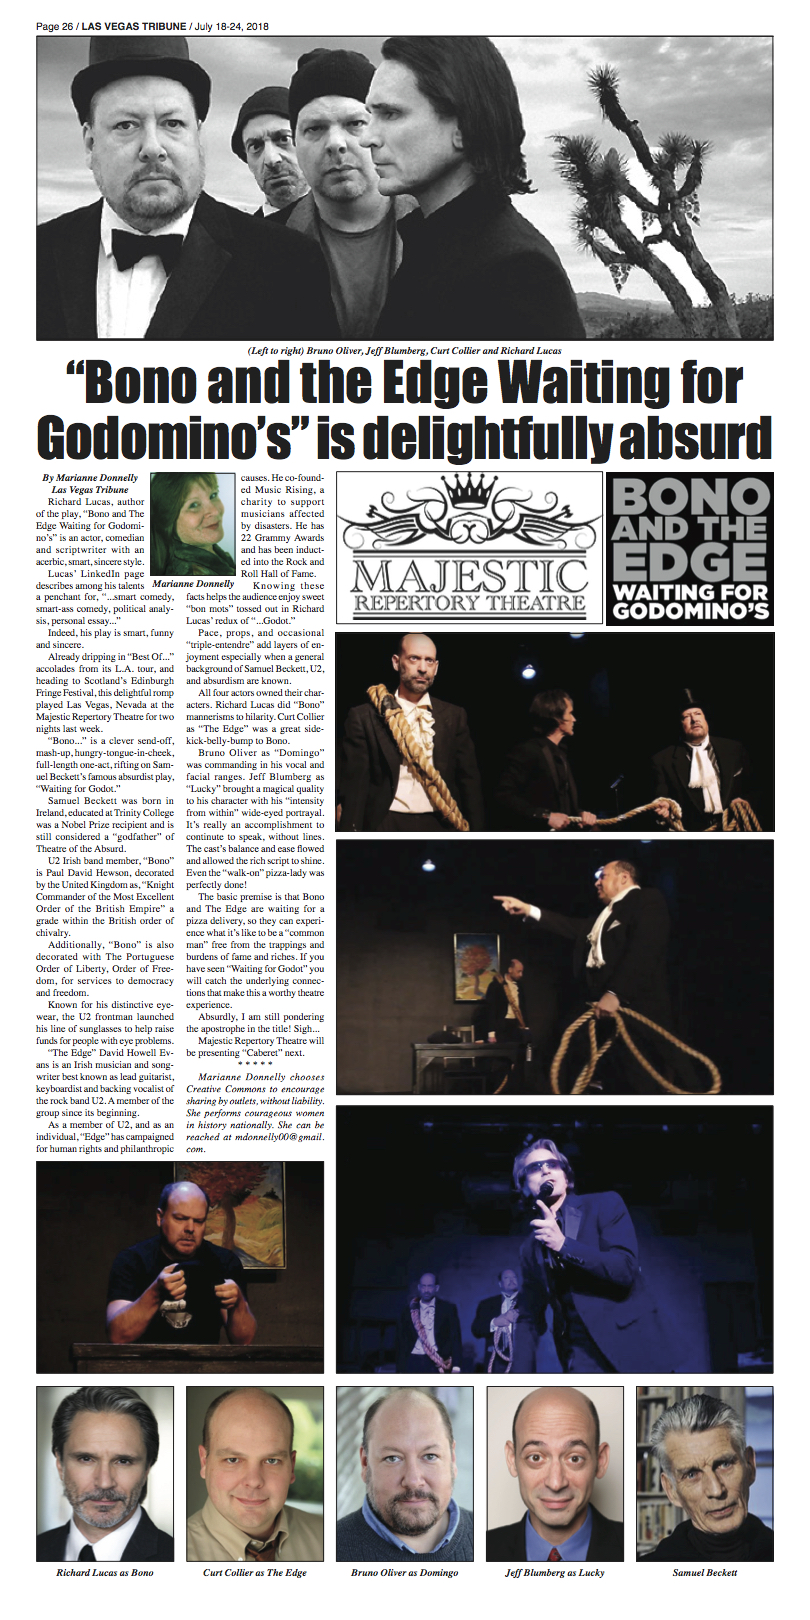 Richard Lucas' award-winning play, Bono and The Edge Waiting for Godomino's, featured in NoHoArtsDisctrict.com